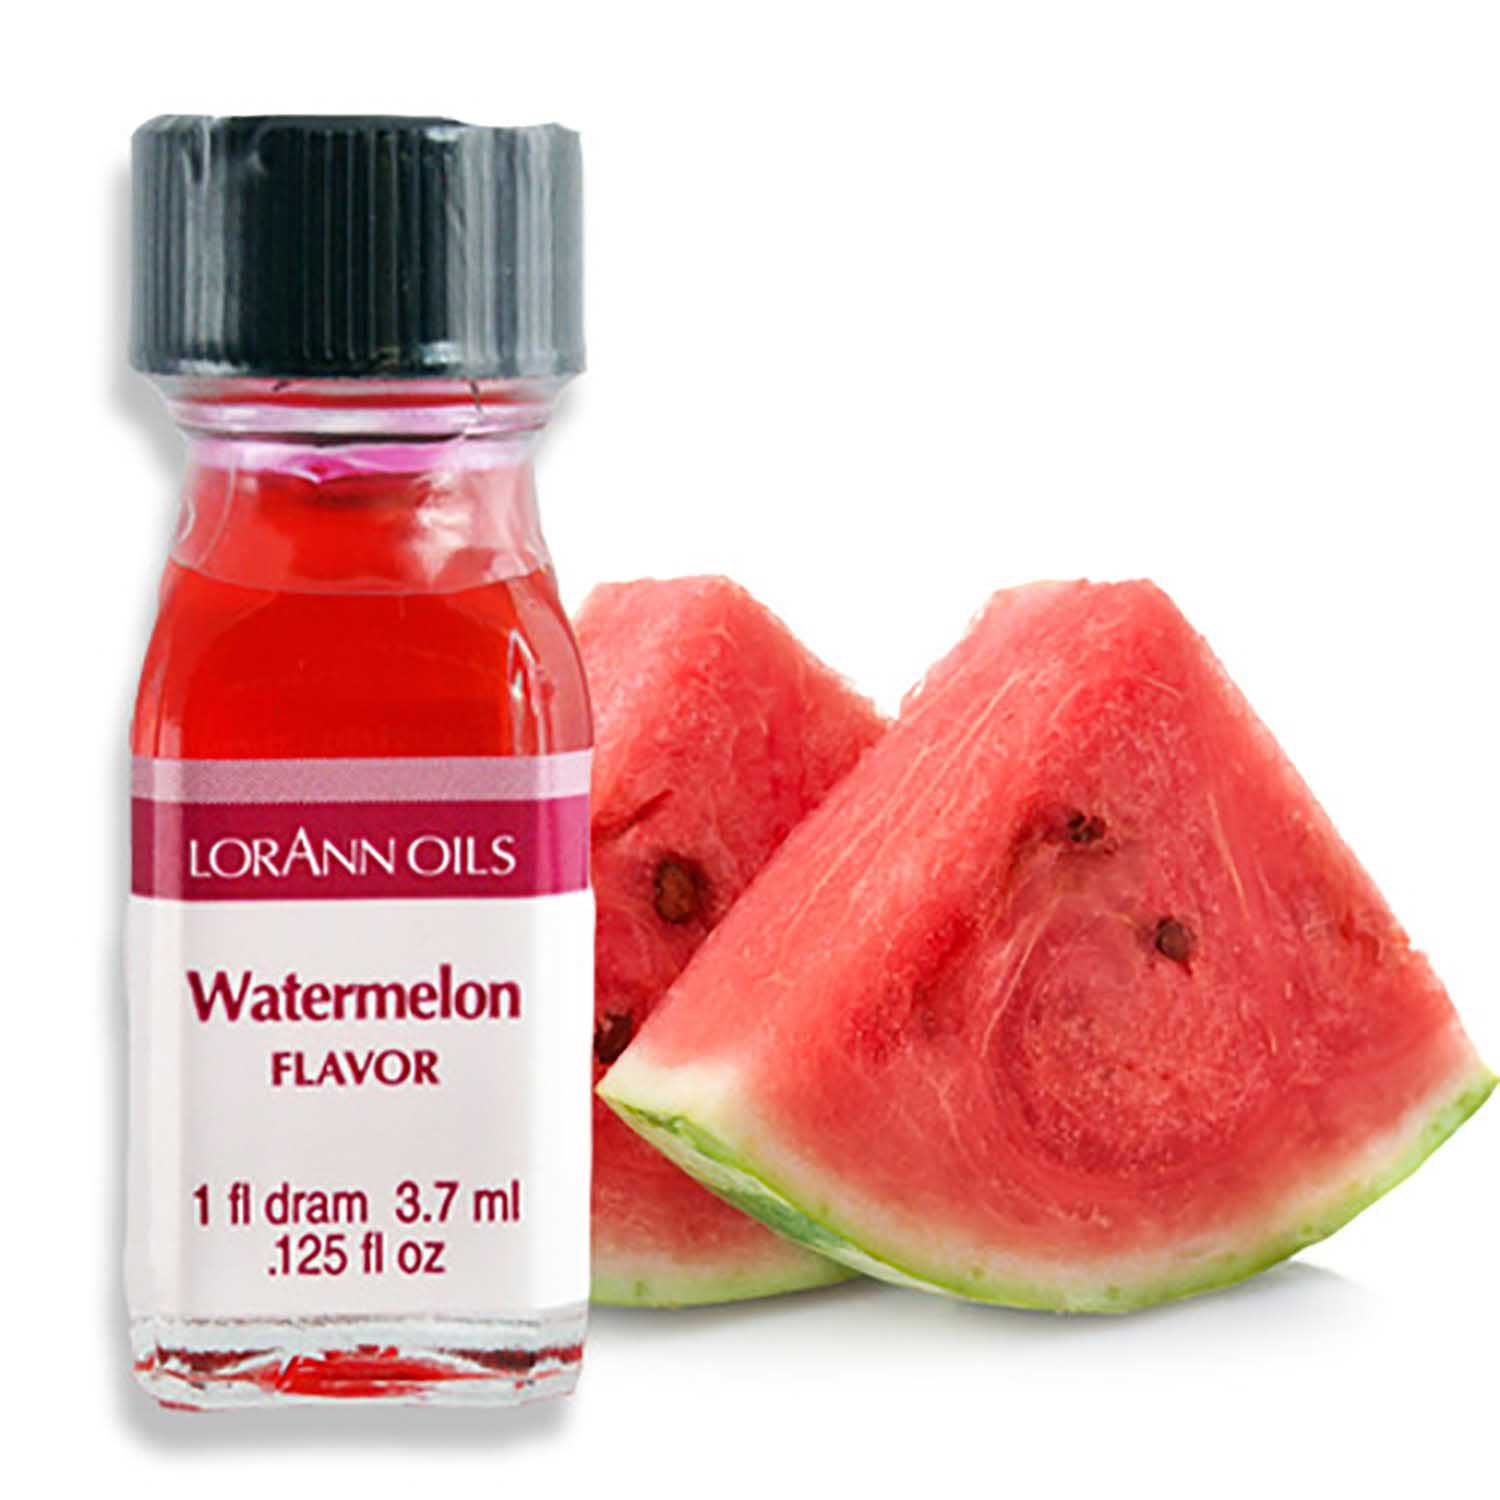 Watermelon Super-Strength Flavor